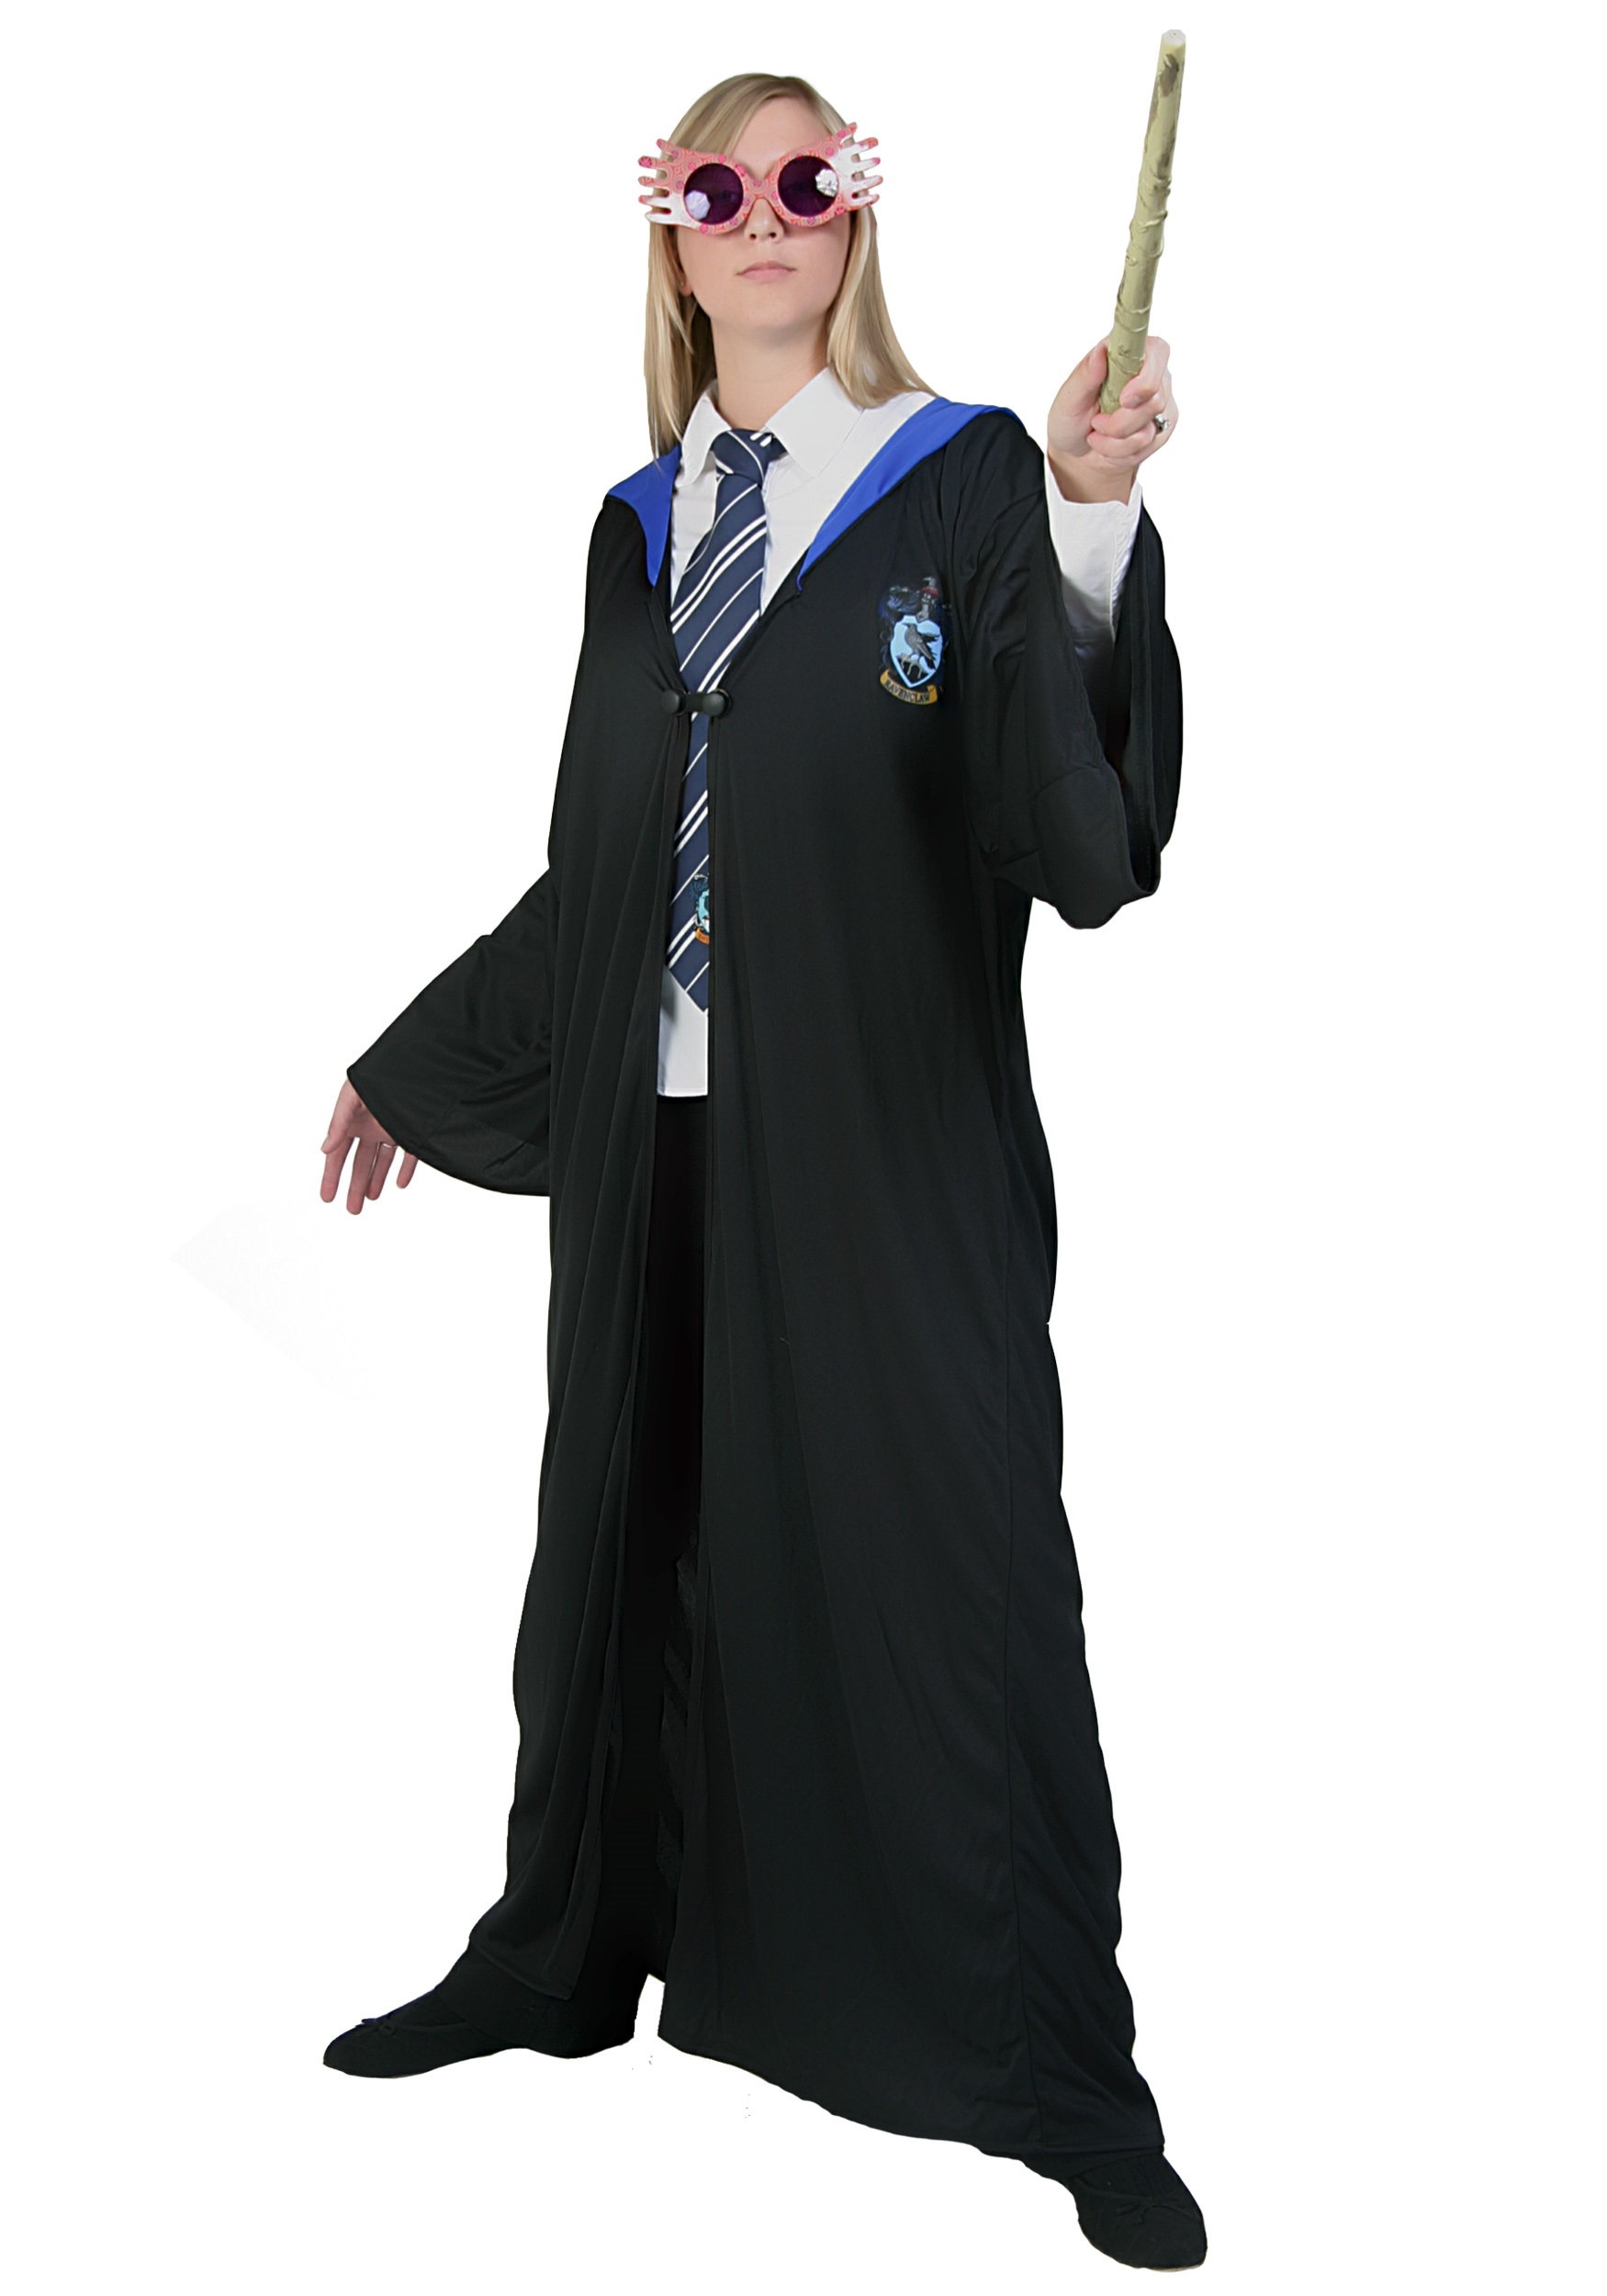 gryffindor girl costume Gryffindor costumes - 143 results from brands rubie's, harry potter your little girl will turn into a clever witch like hermione in this nightgown.